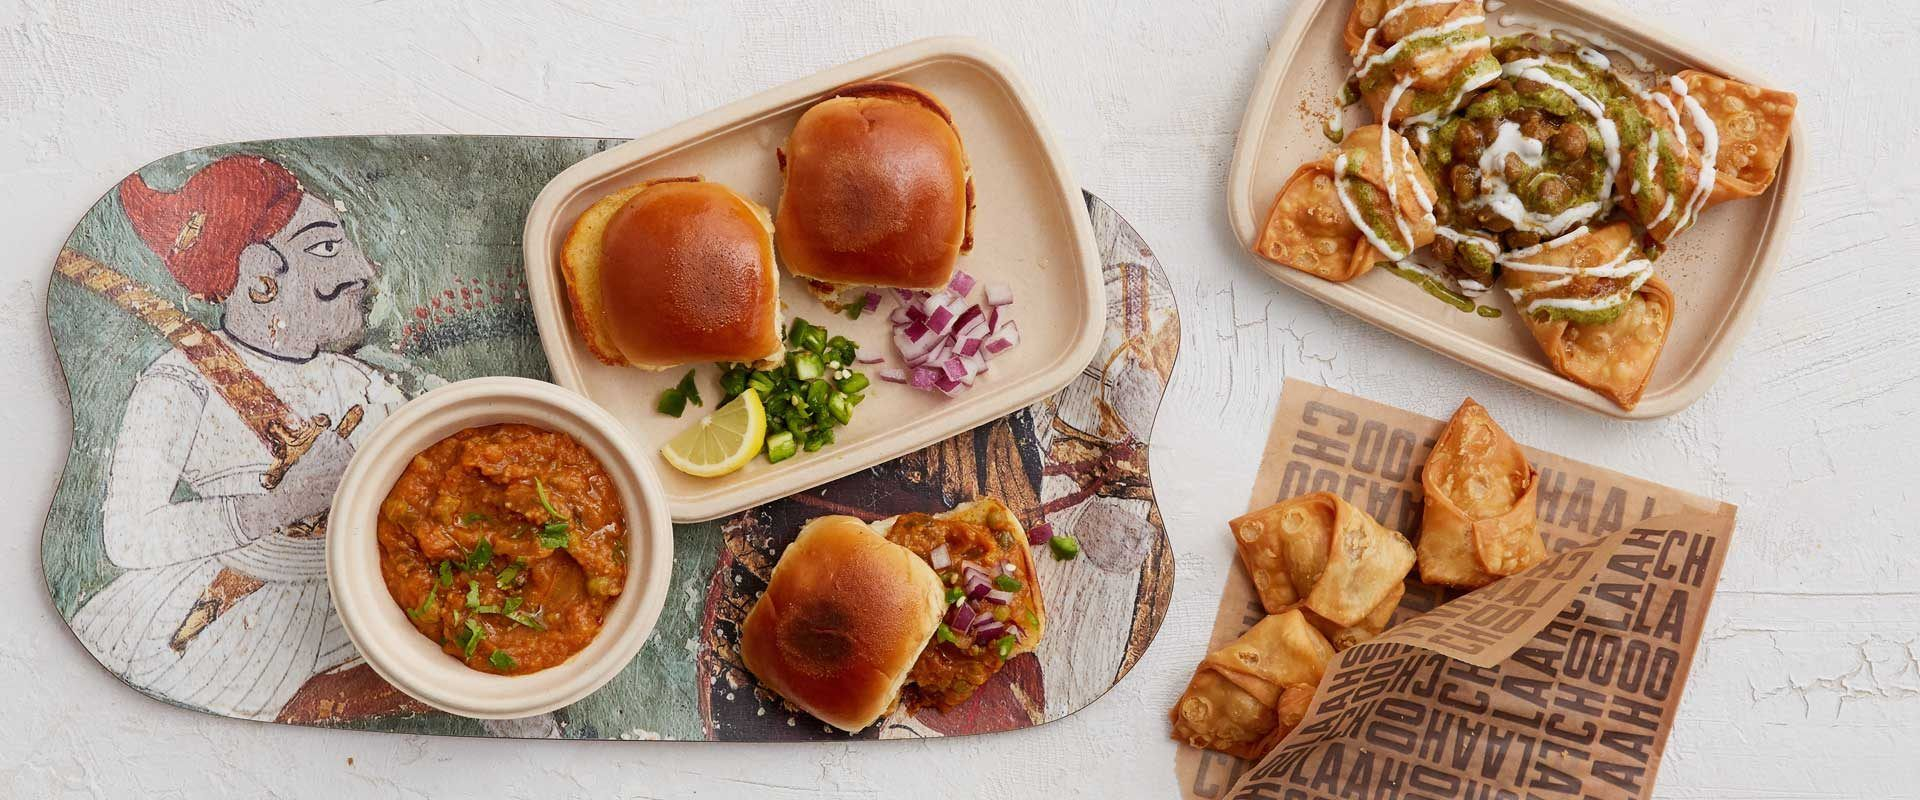 Pav Bhaji, samosas and samosa chaat on a table